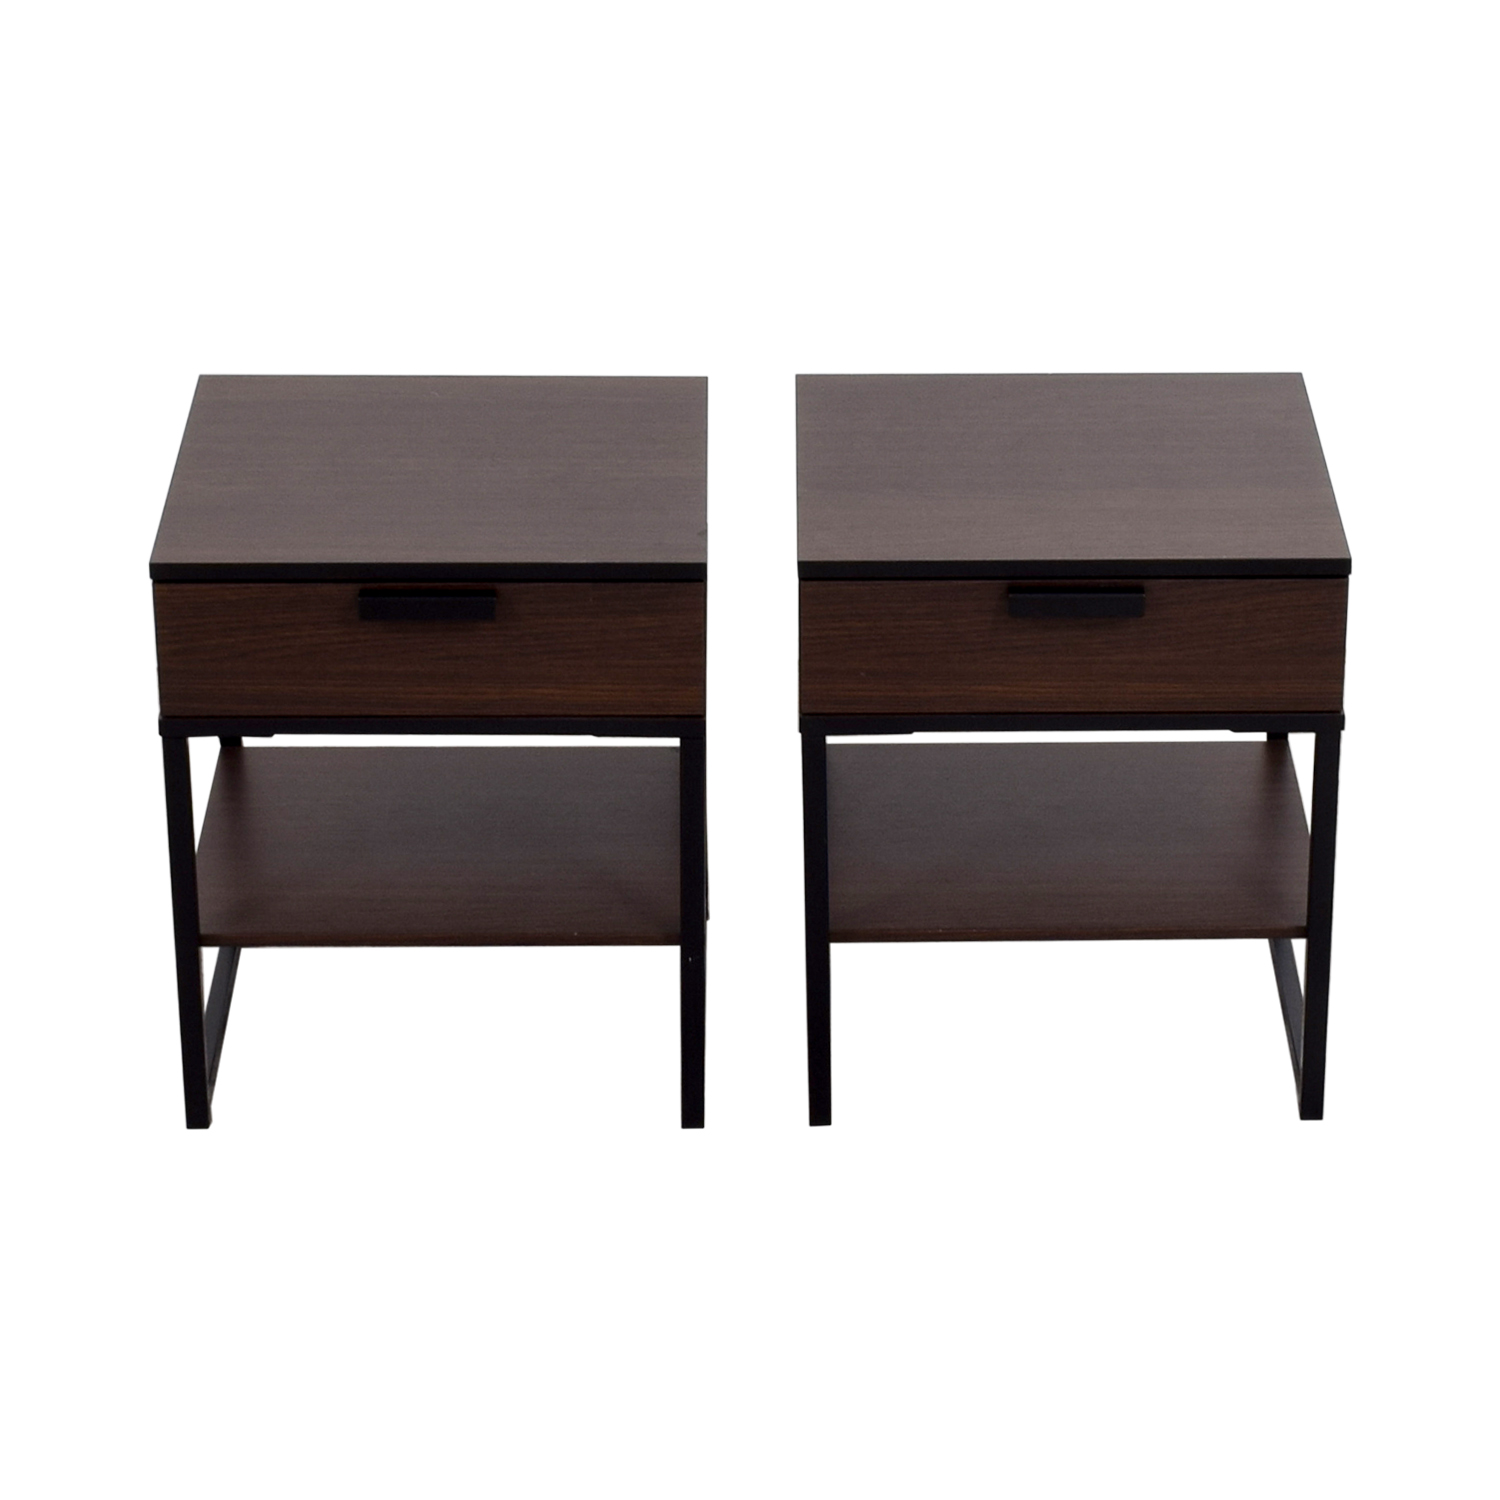 End Tables Used End Tables for sale